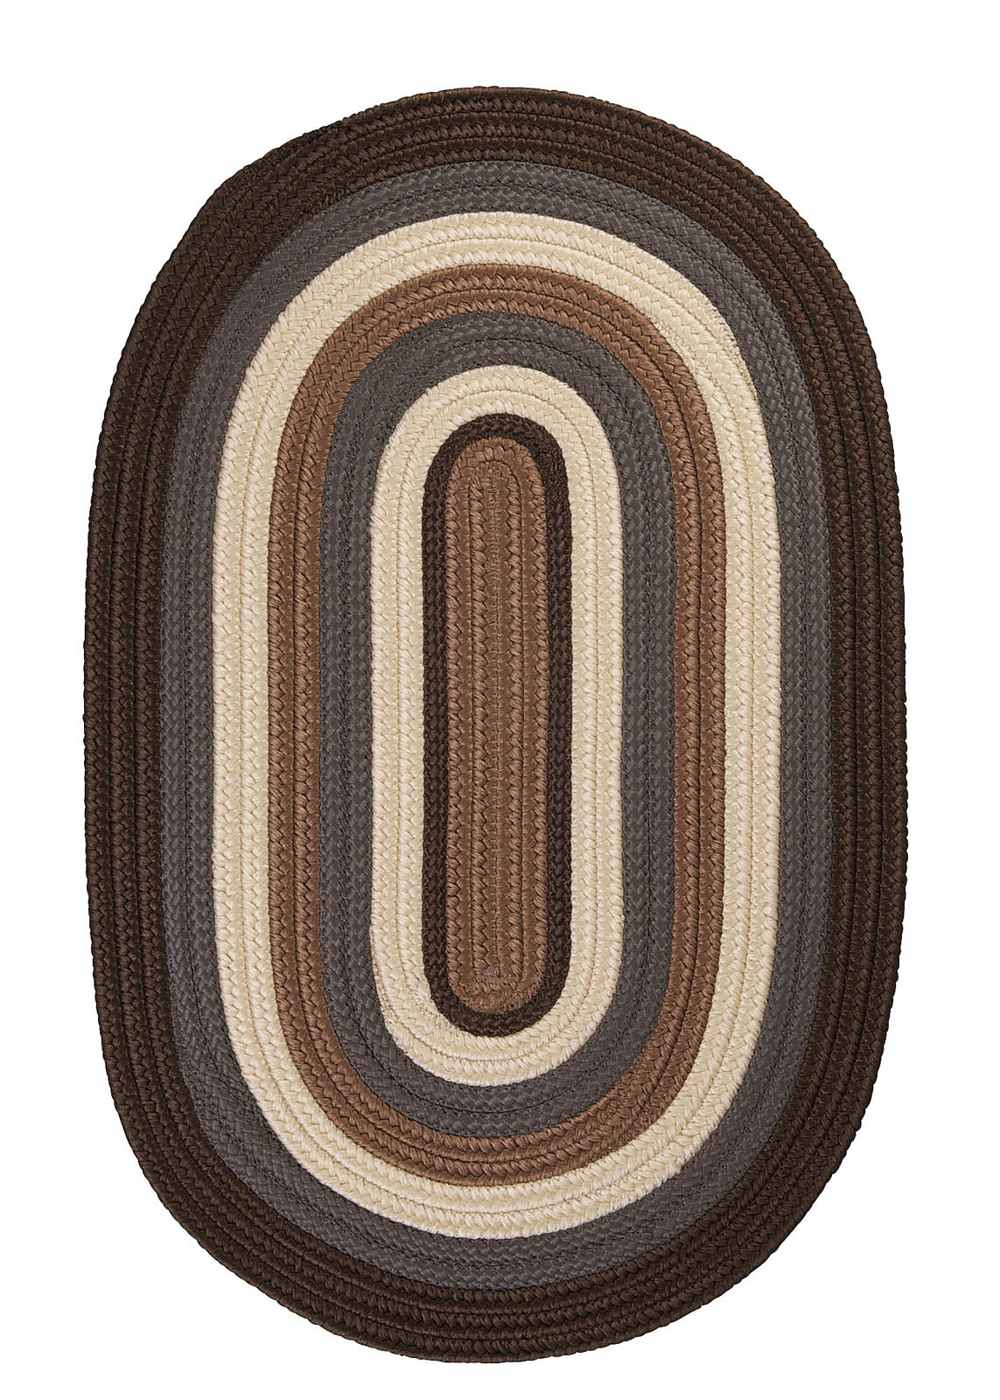 Super Area Rugs 2ft. x 12ft. Oval Indoor/Outdoor Reversible Braided Rug Brownstone Color (2x12) at Sears.com